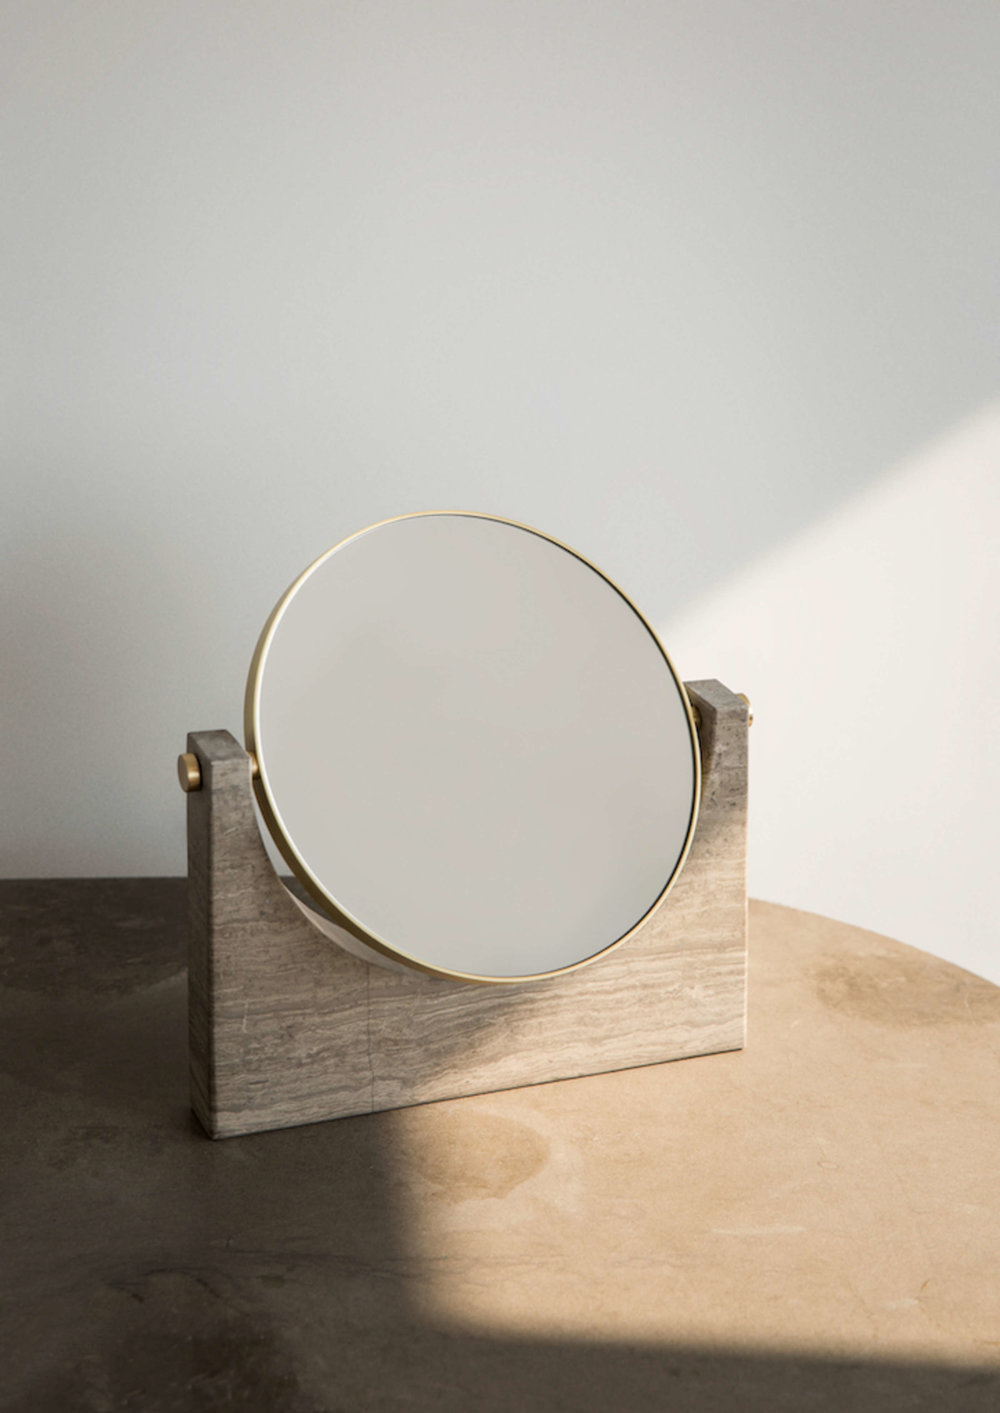 Pepe Mirror by Menu from Simon James